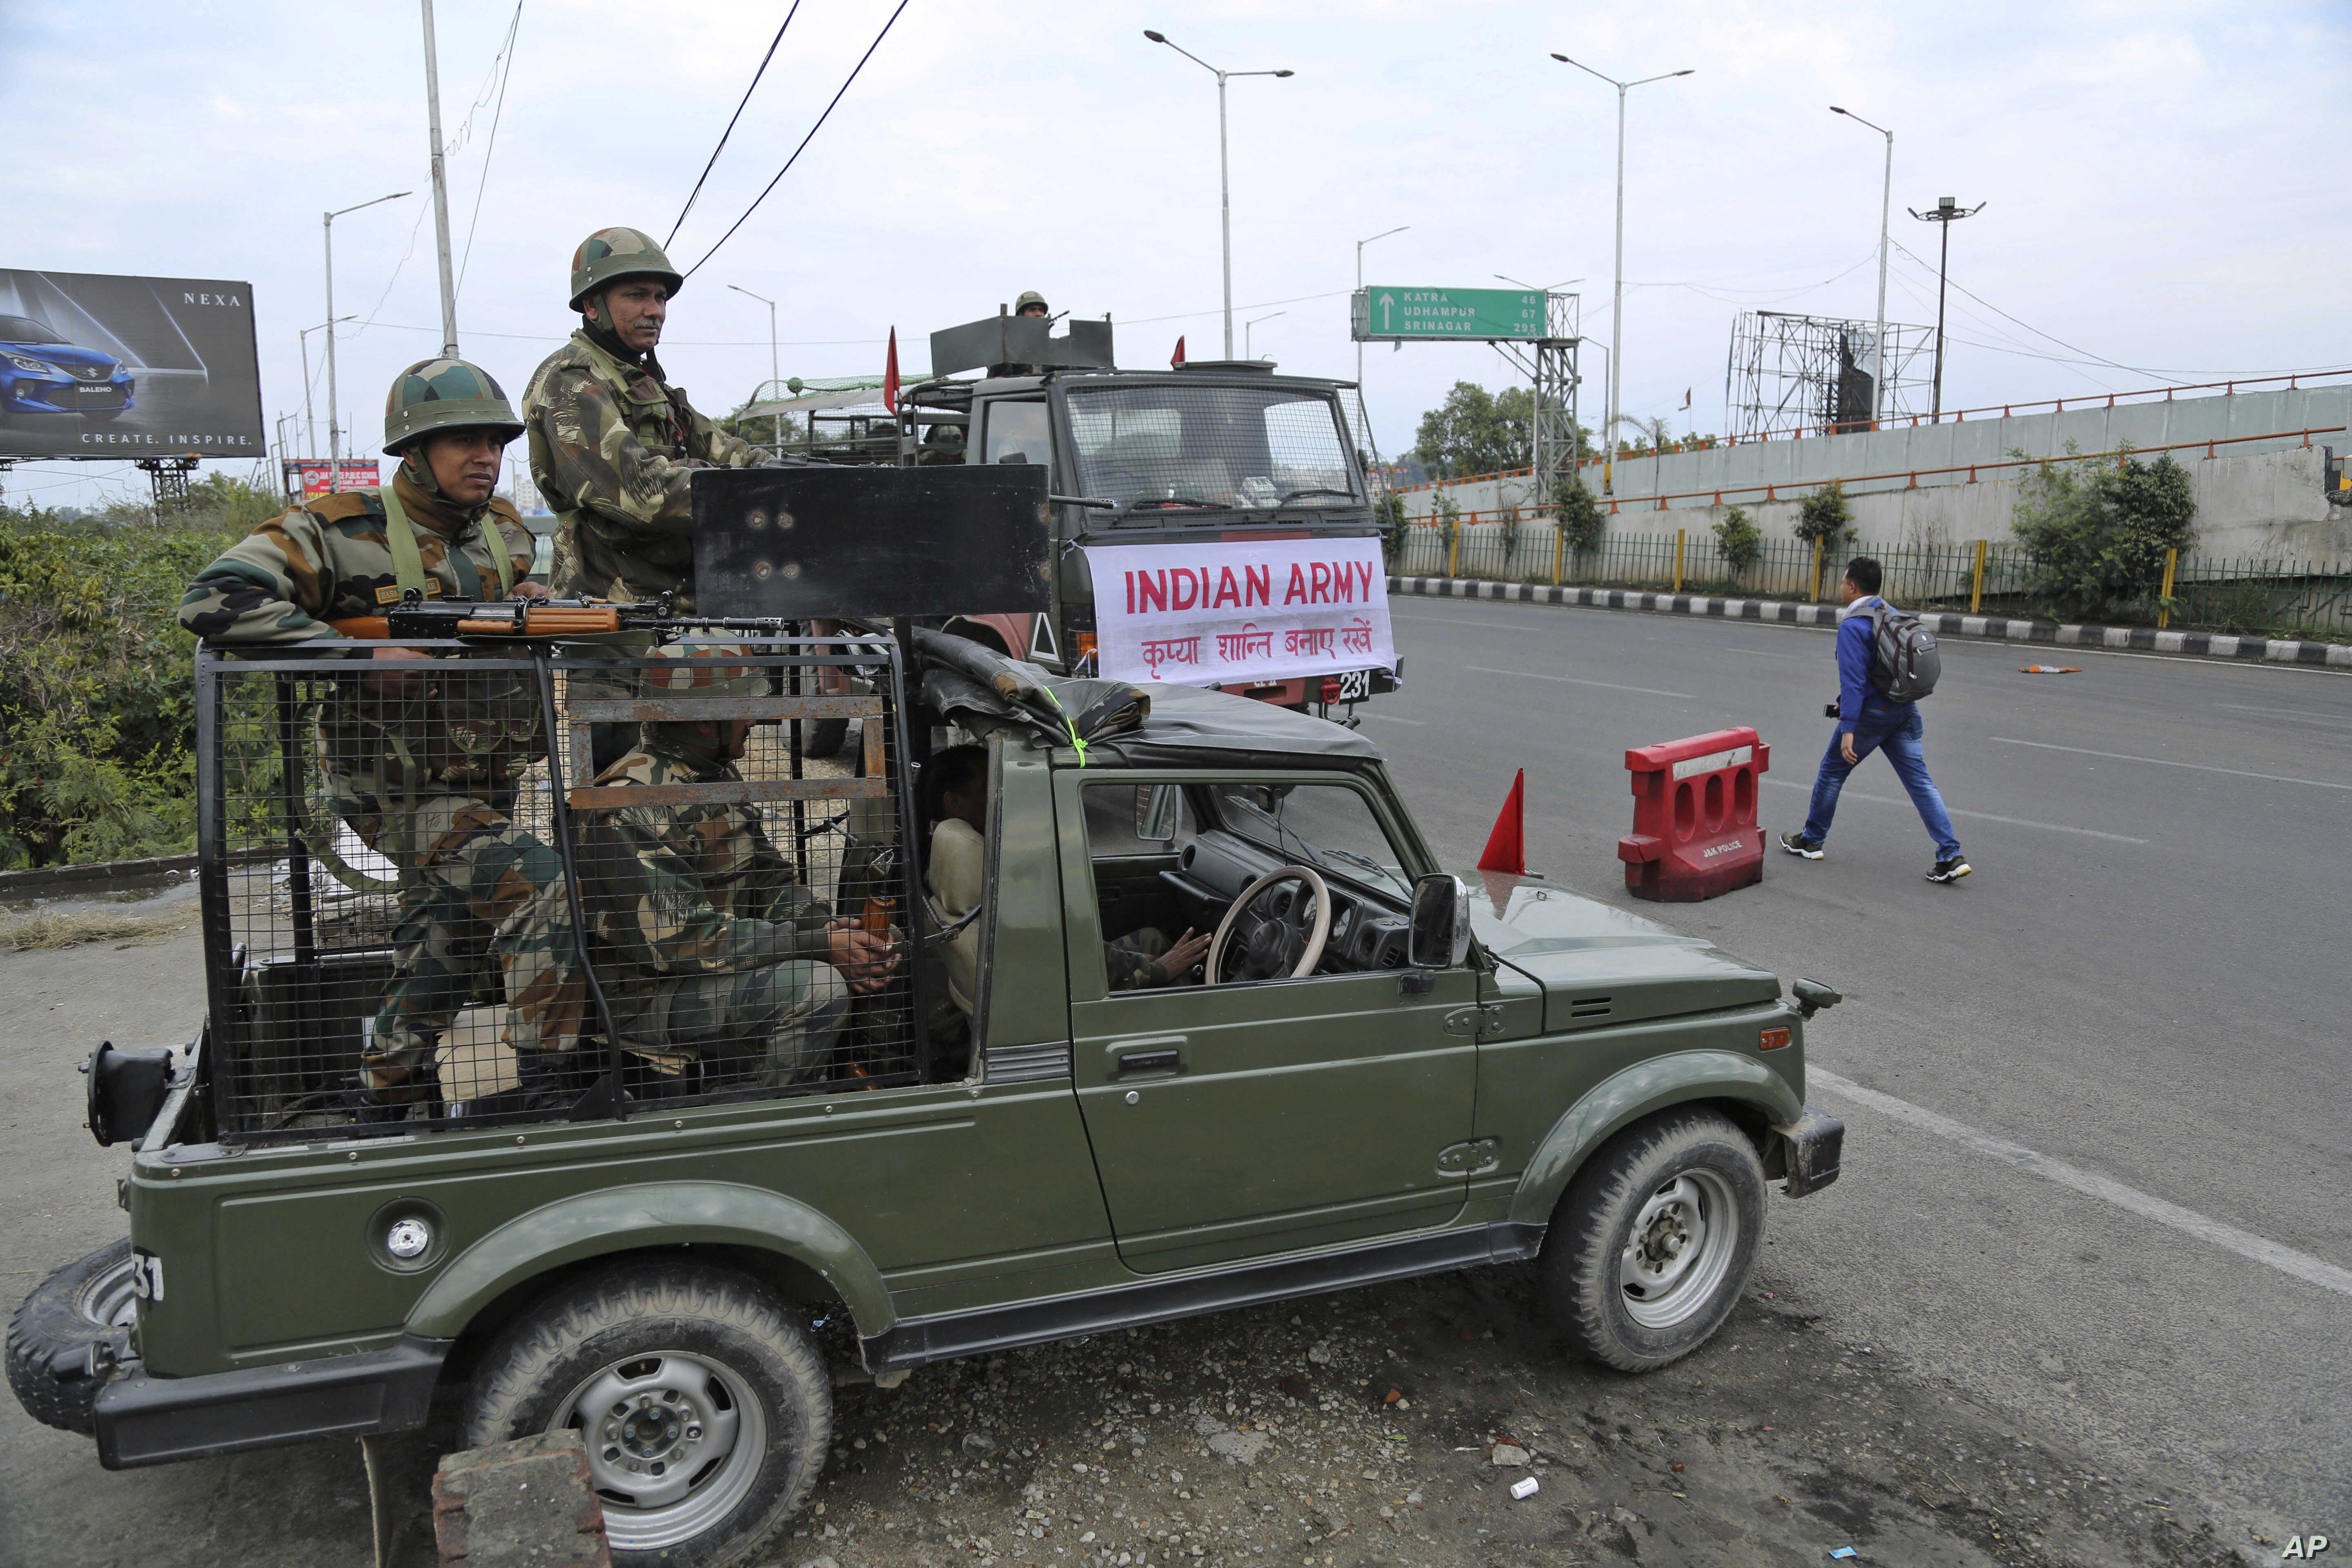 Indian army soldiers vigil during the fourth consecutive day of curfew in Jammu, the winter capital of Jammu and Kashmir state, Feb.18, 2019.